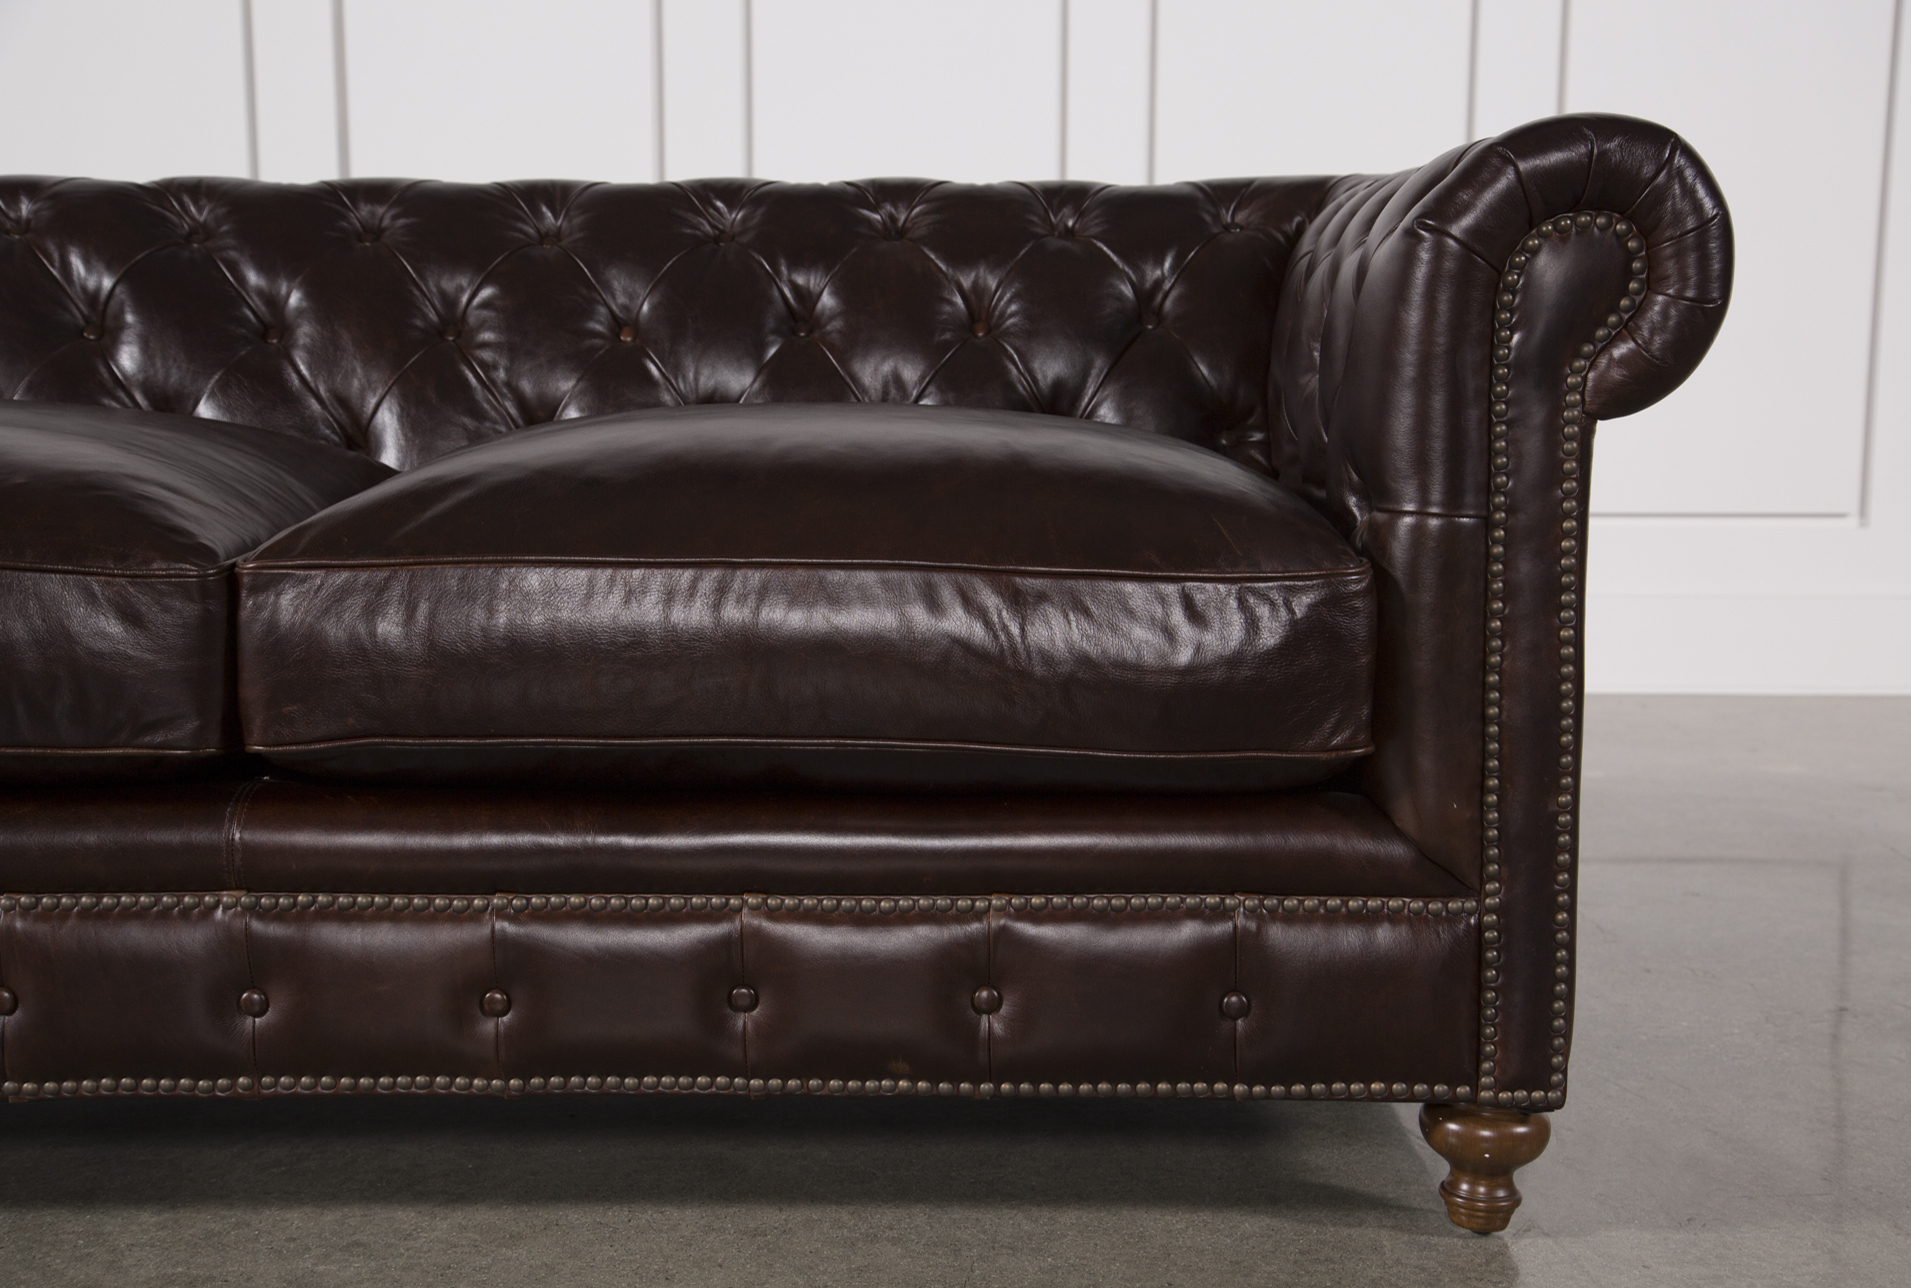 Mansfield 86 Inch Cocoa Leather Sofa In 2018 | Products | Pinterest Pertaining To Mansfield Cocoa Leather Sofa Chairs (View 2 of 25)